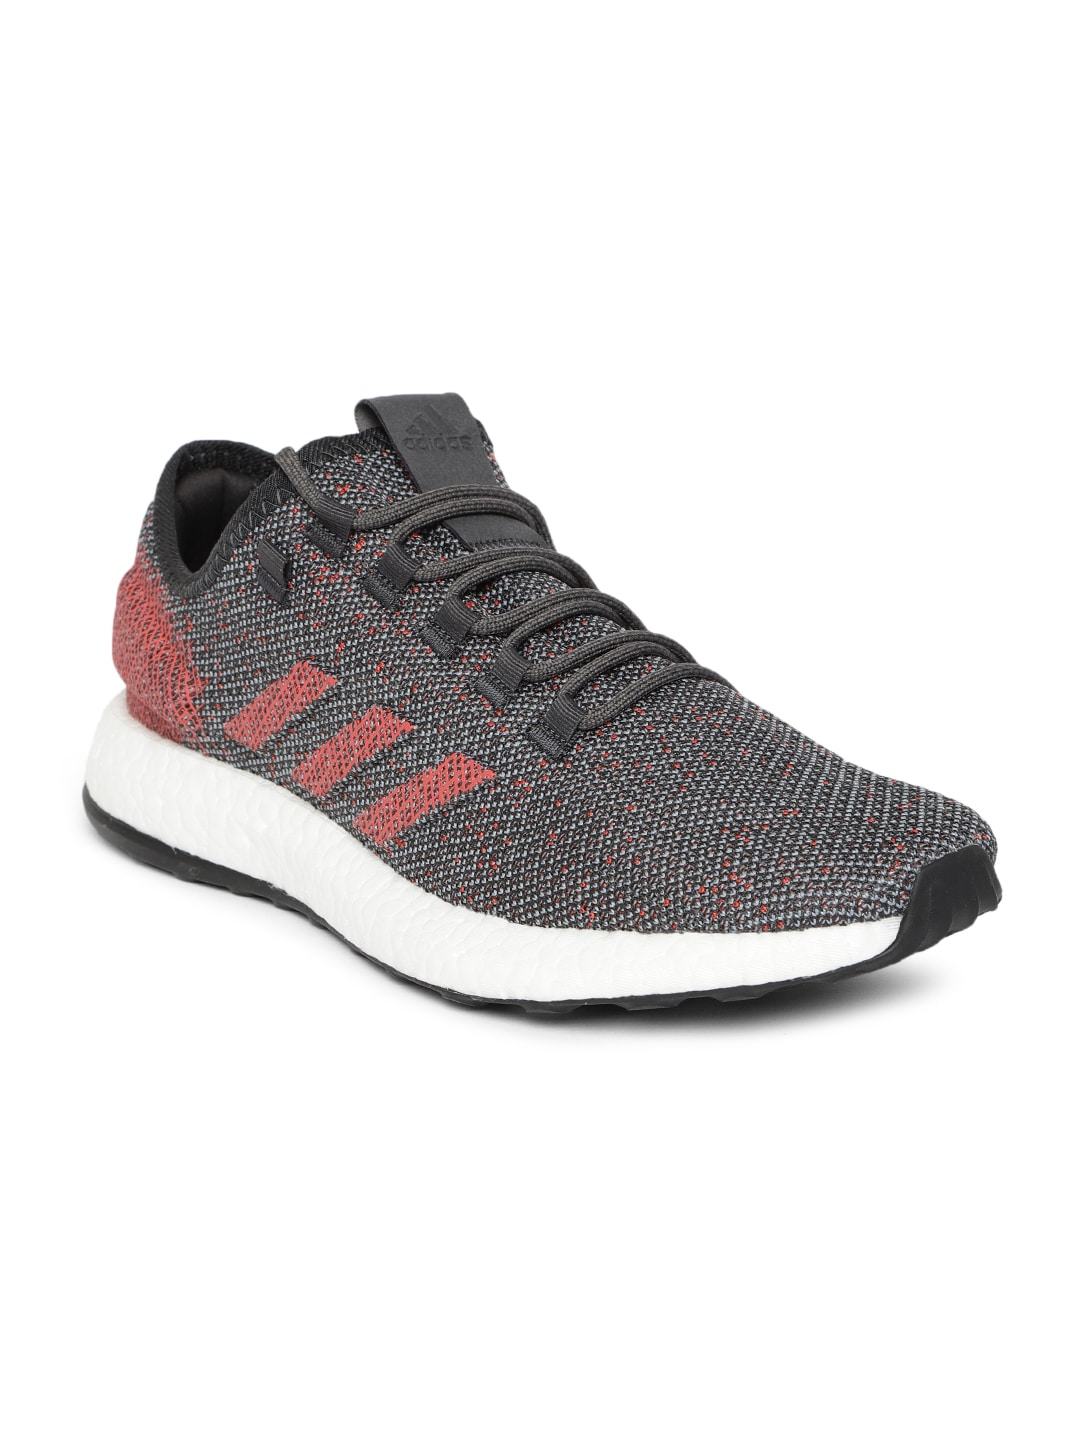 a82fd634f482 Adidas Sports Shoes - Buy Addidas Sports Shoes Online